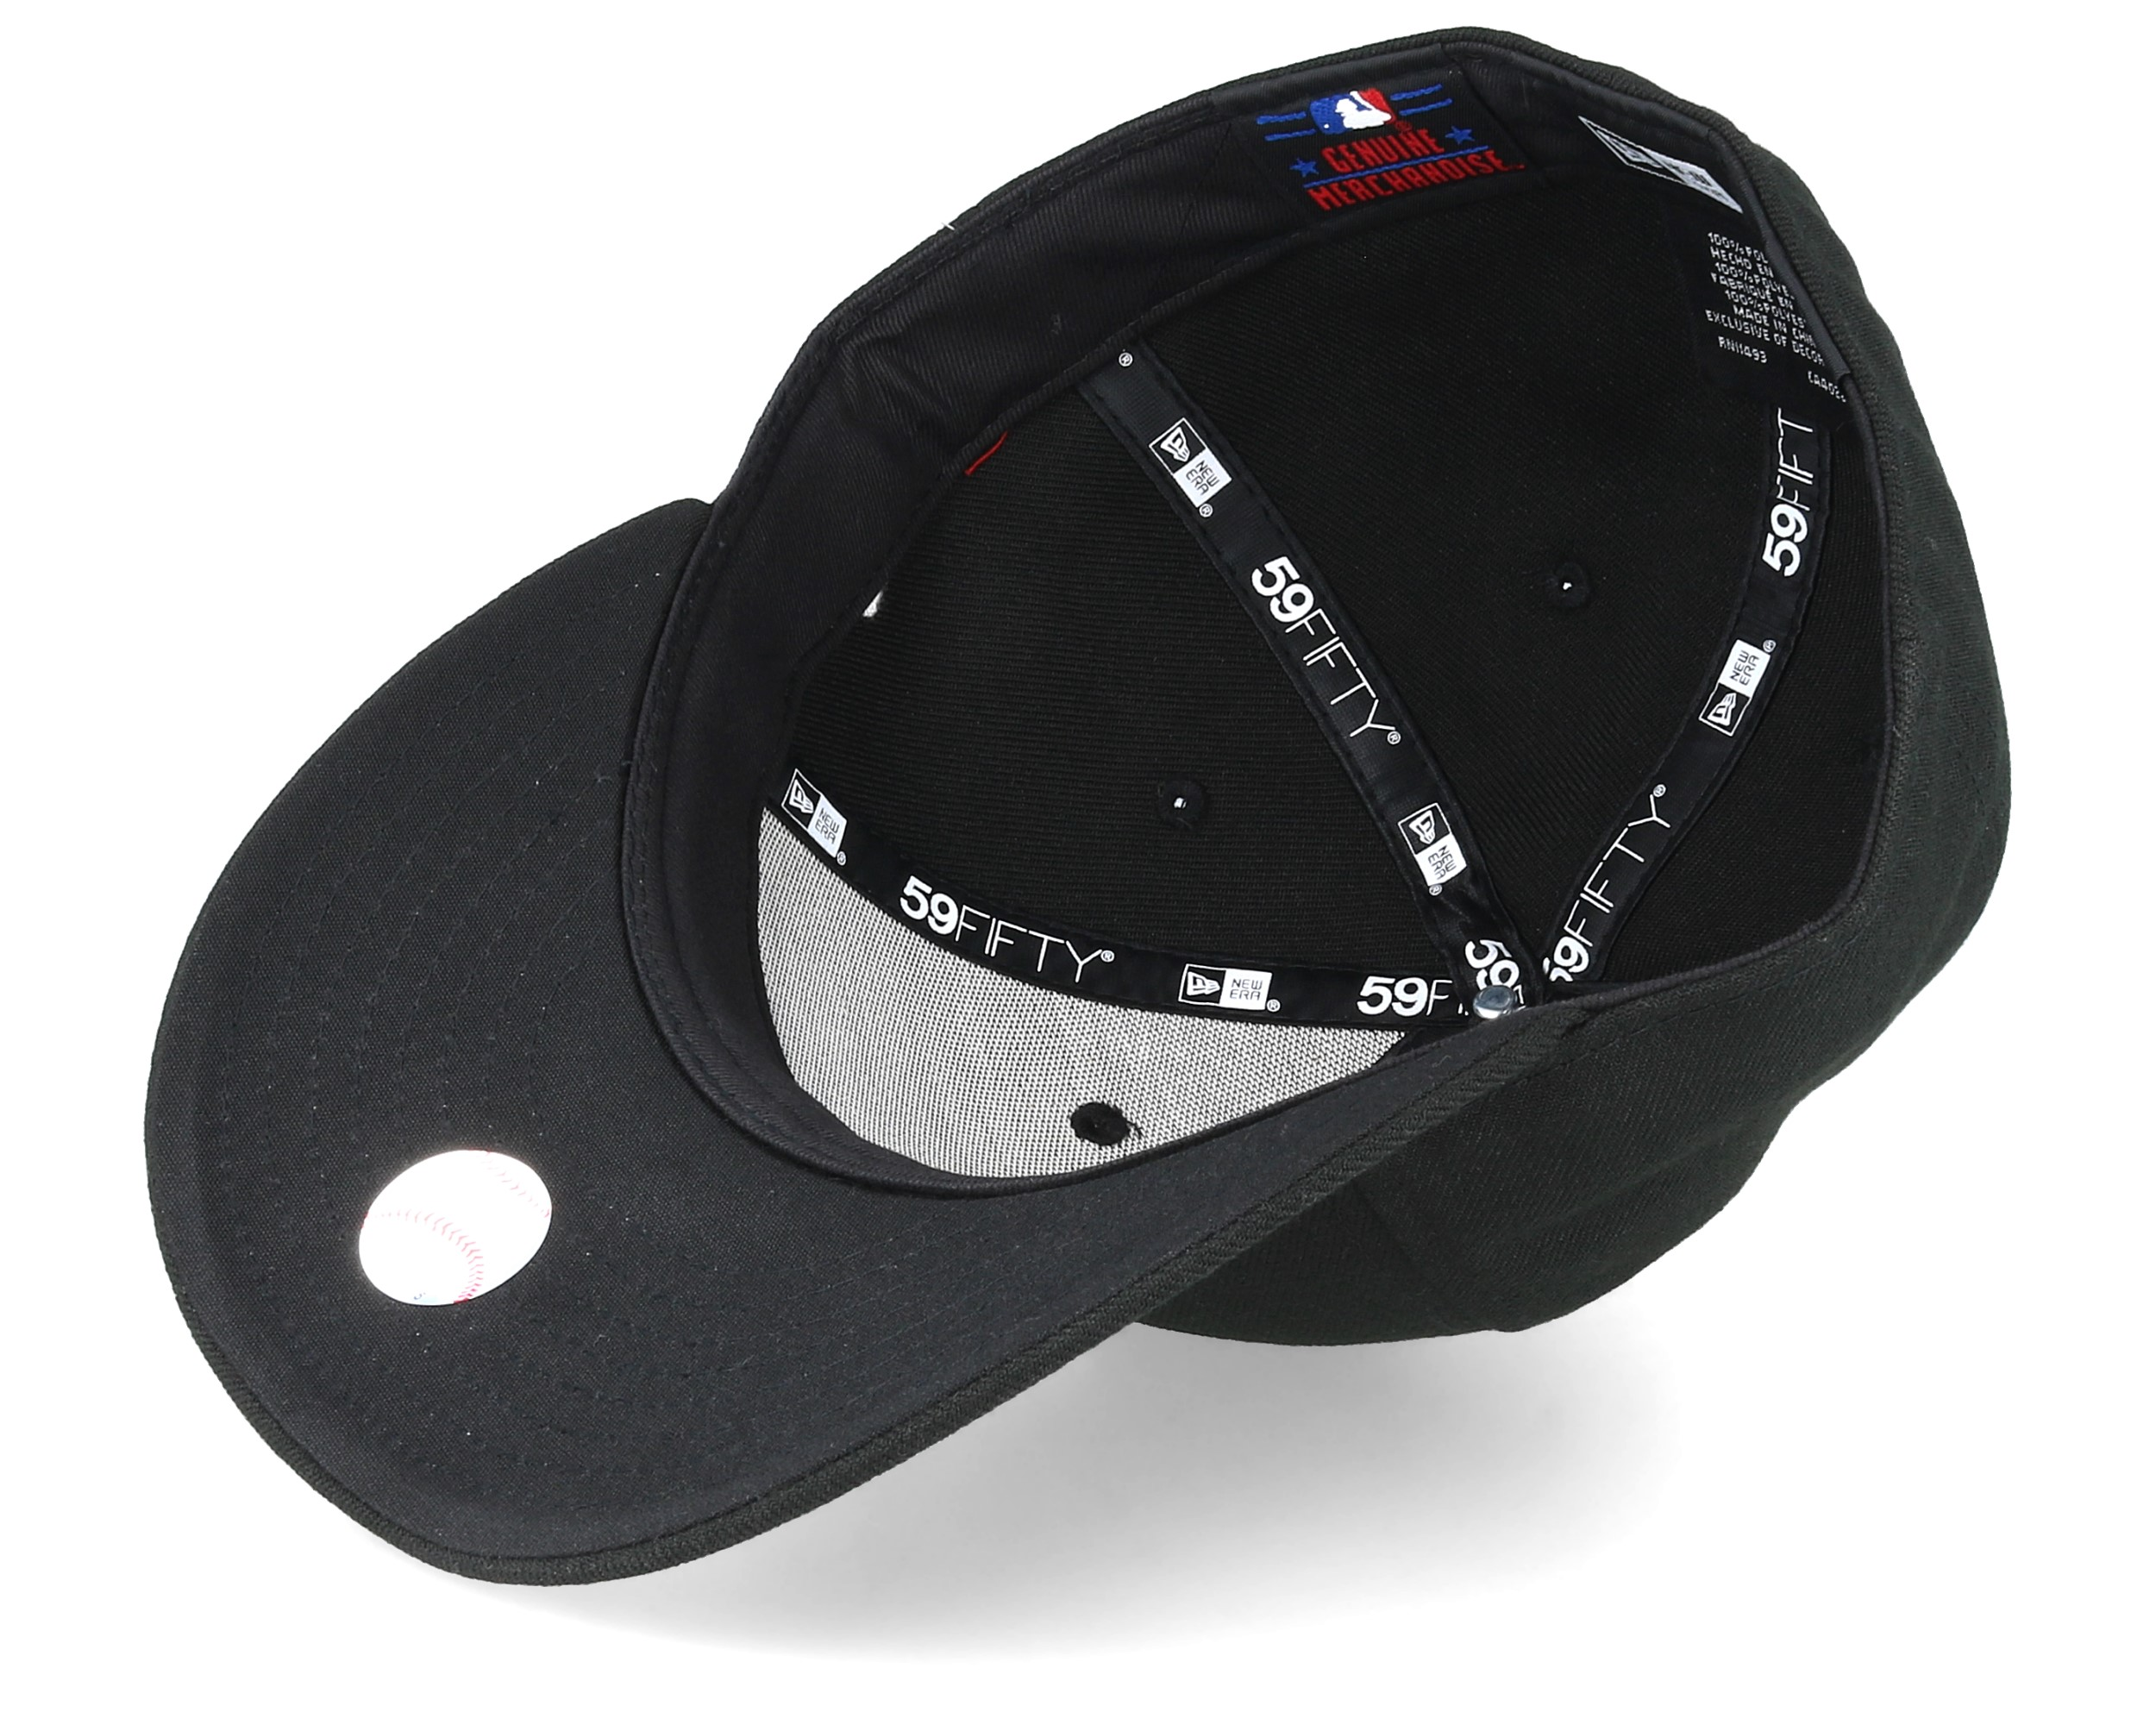 quality design 6fb8f c21d2 Only 1 in stock!  ProductAttribut.cap  från New Era